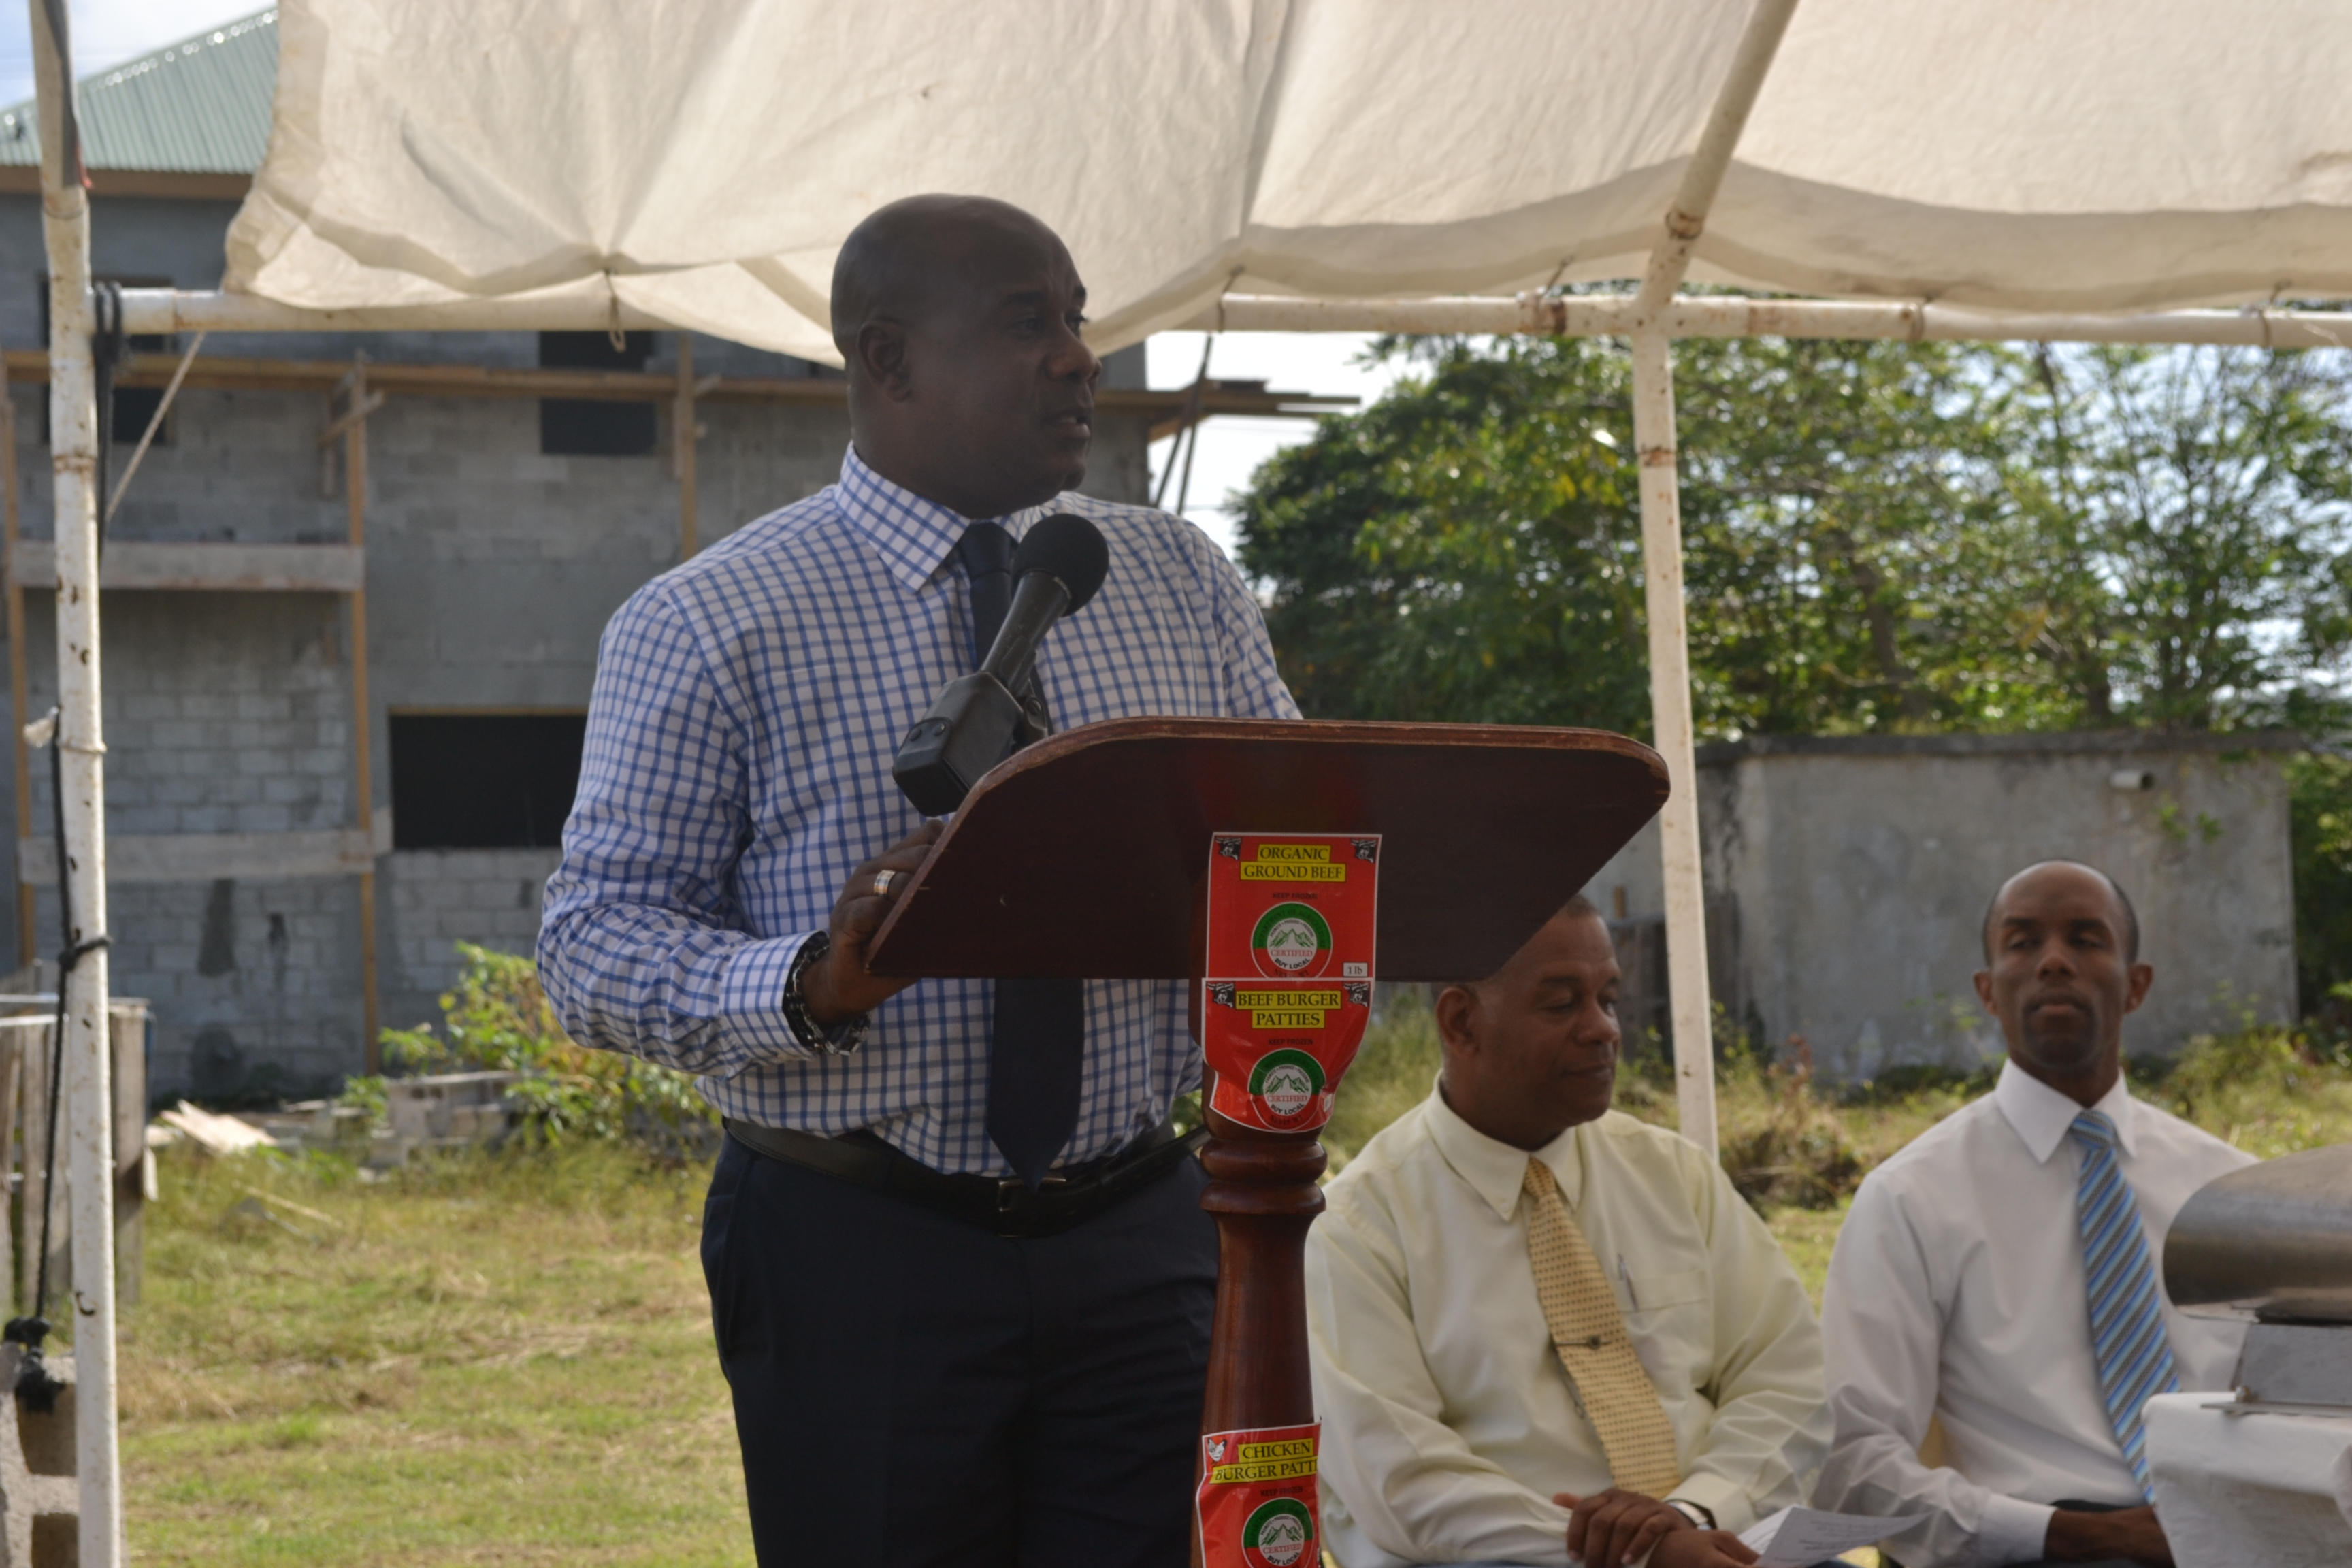 Minister of Agriculture Hon. Alexis Jeffers making remarks at the Ground Breaking Ceremony for the extension of the Abattoir Division on the Abattoir Division Grounds on January 26 2016